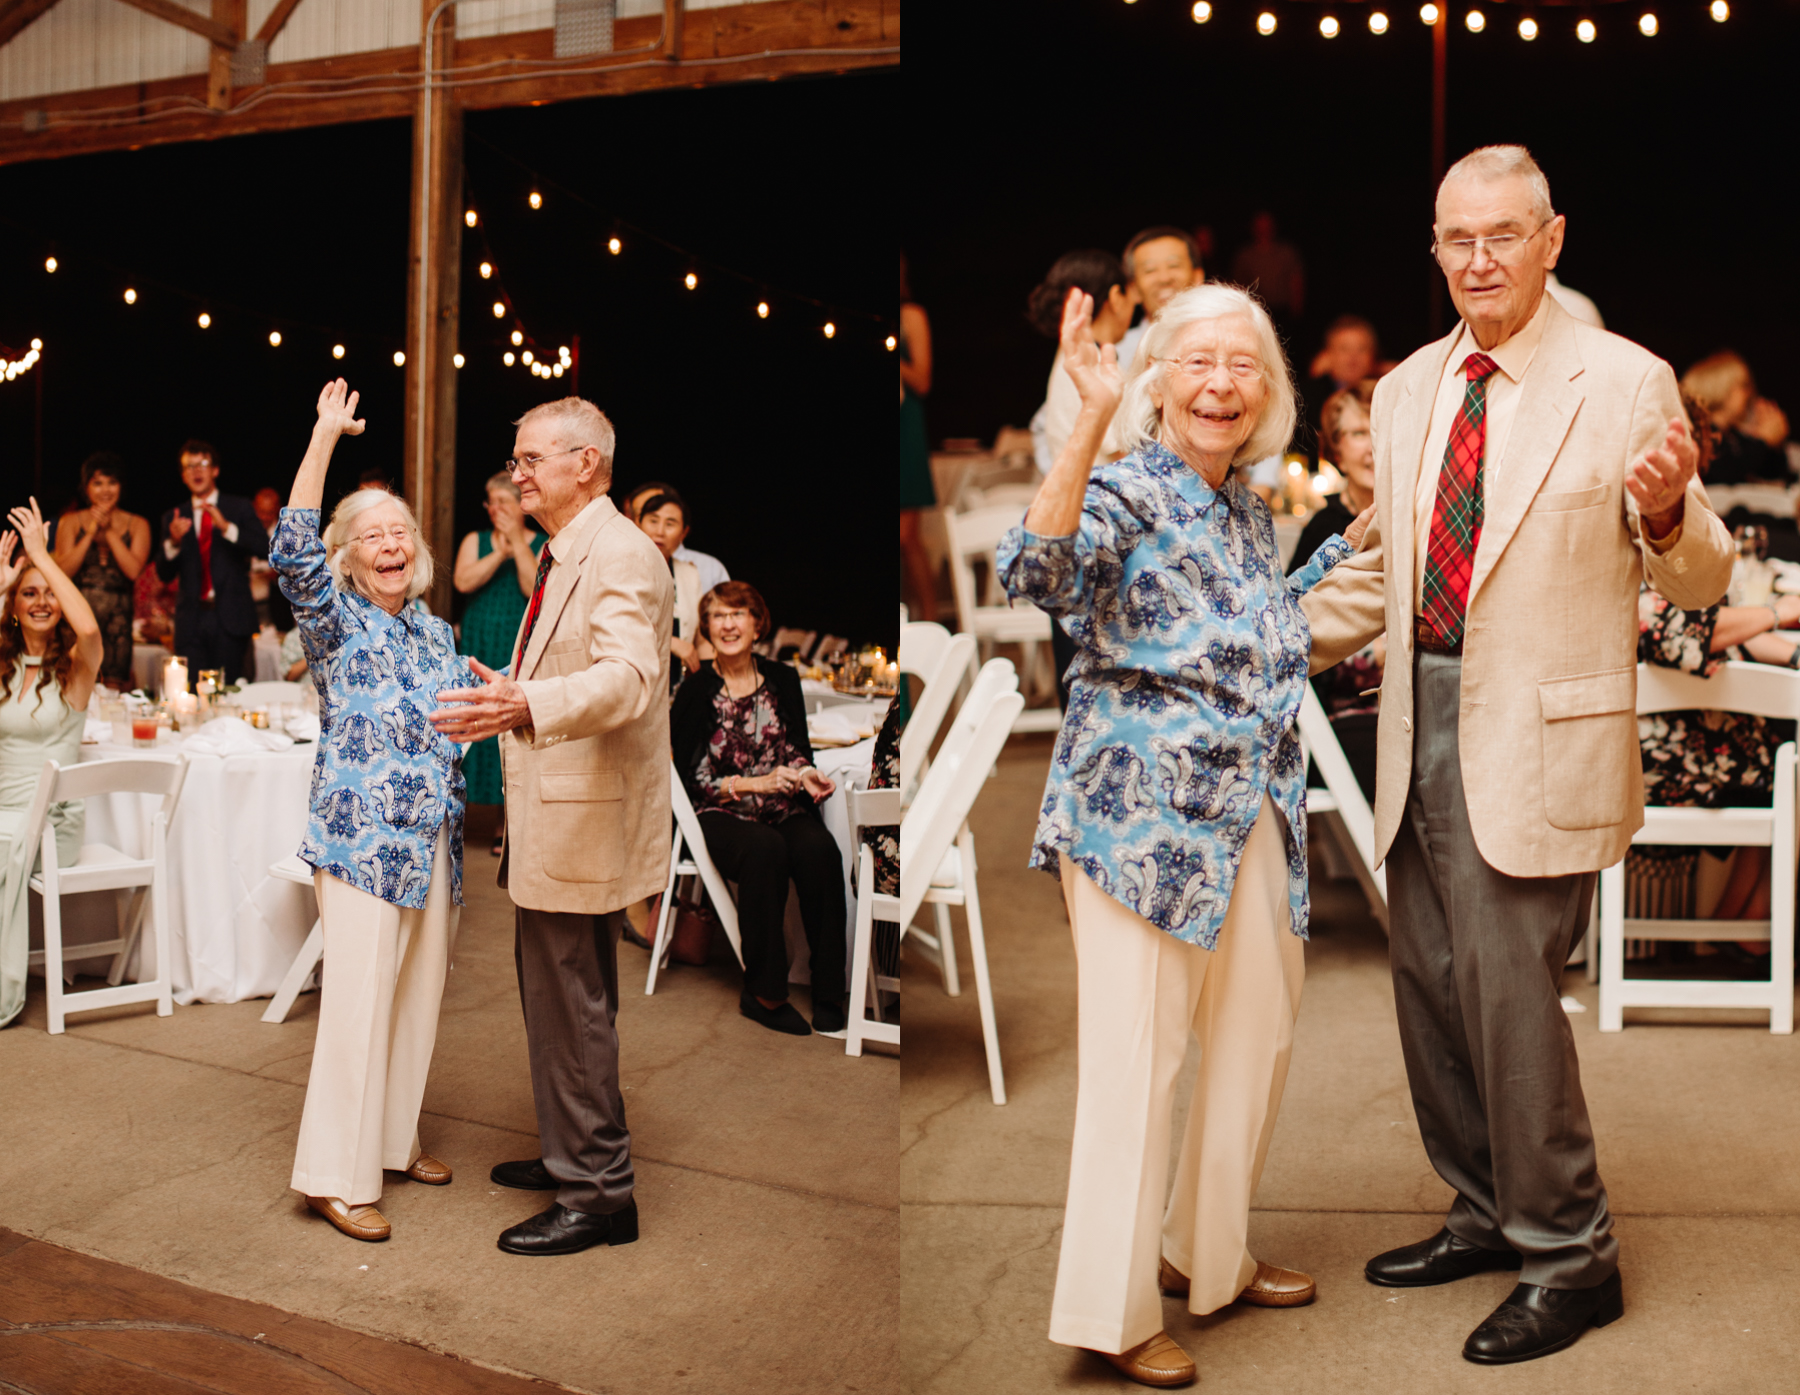 Bride's grandparents remain on the dance floor as the longest married couple at a stables at strawberry creek wedding in knoxville, tennessee